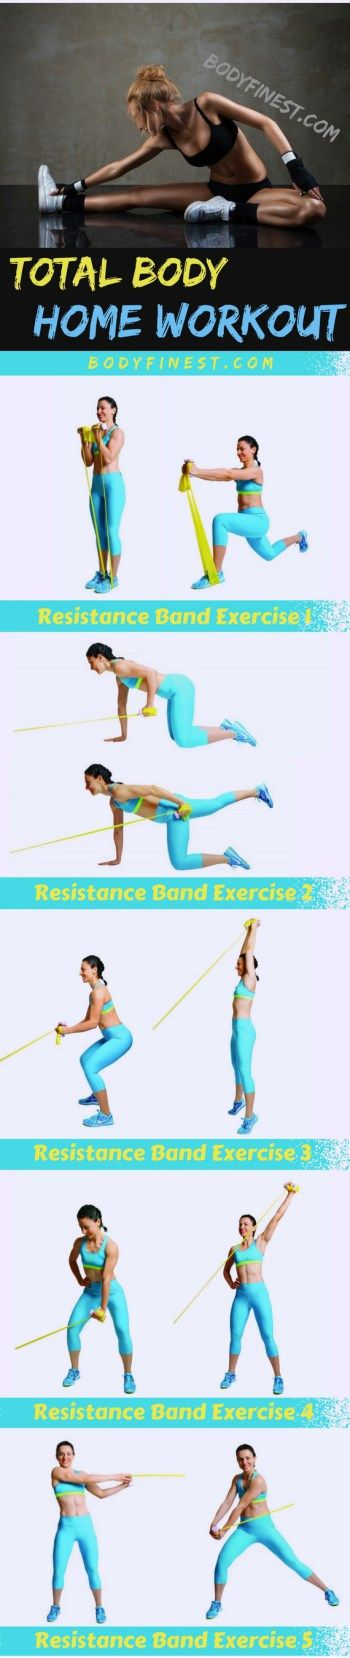 I do a lot of these resistance workouts with various bands. Have been doing them for a while for my shoulder.